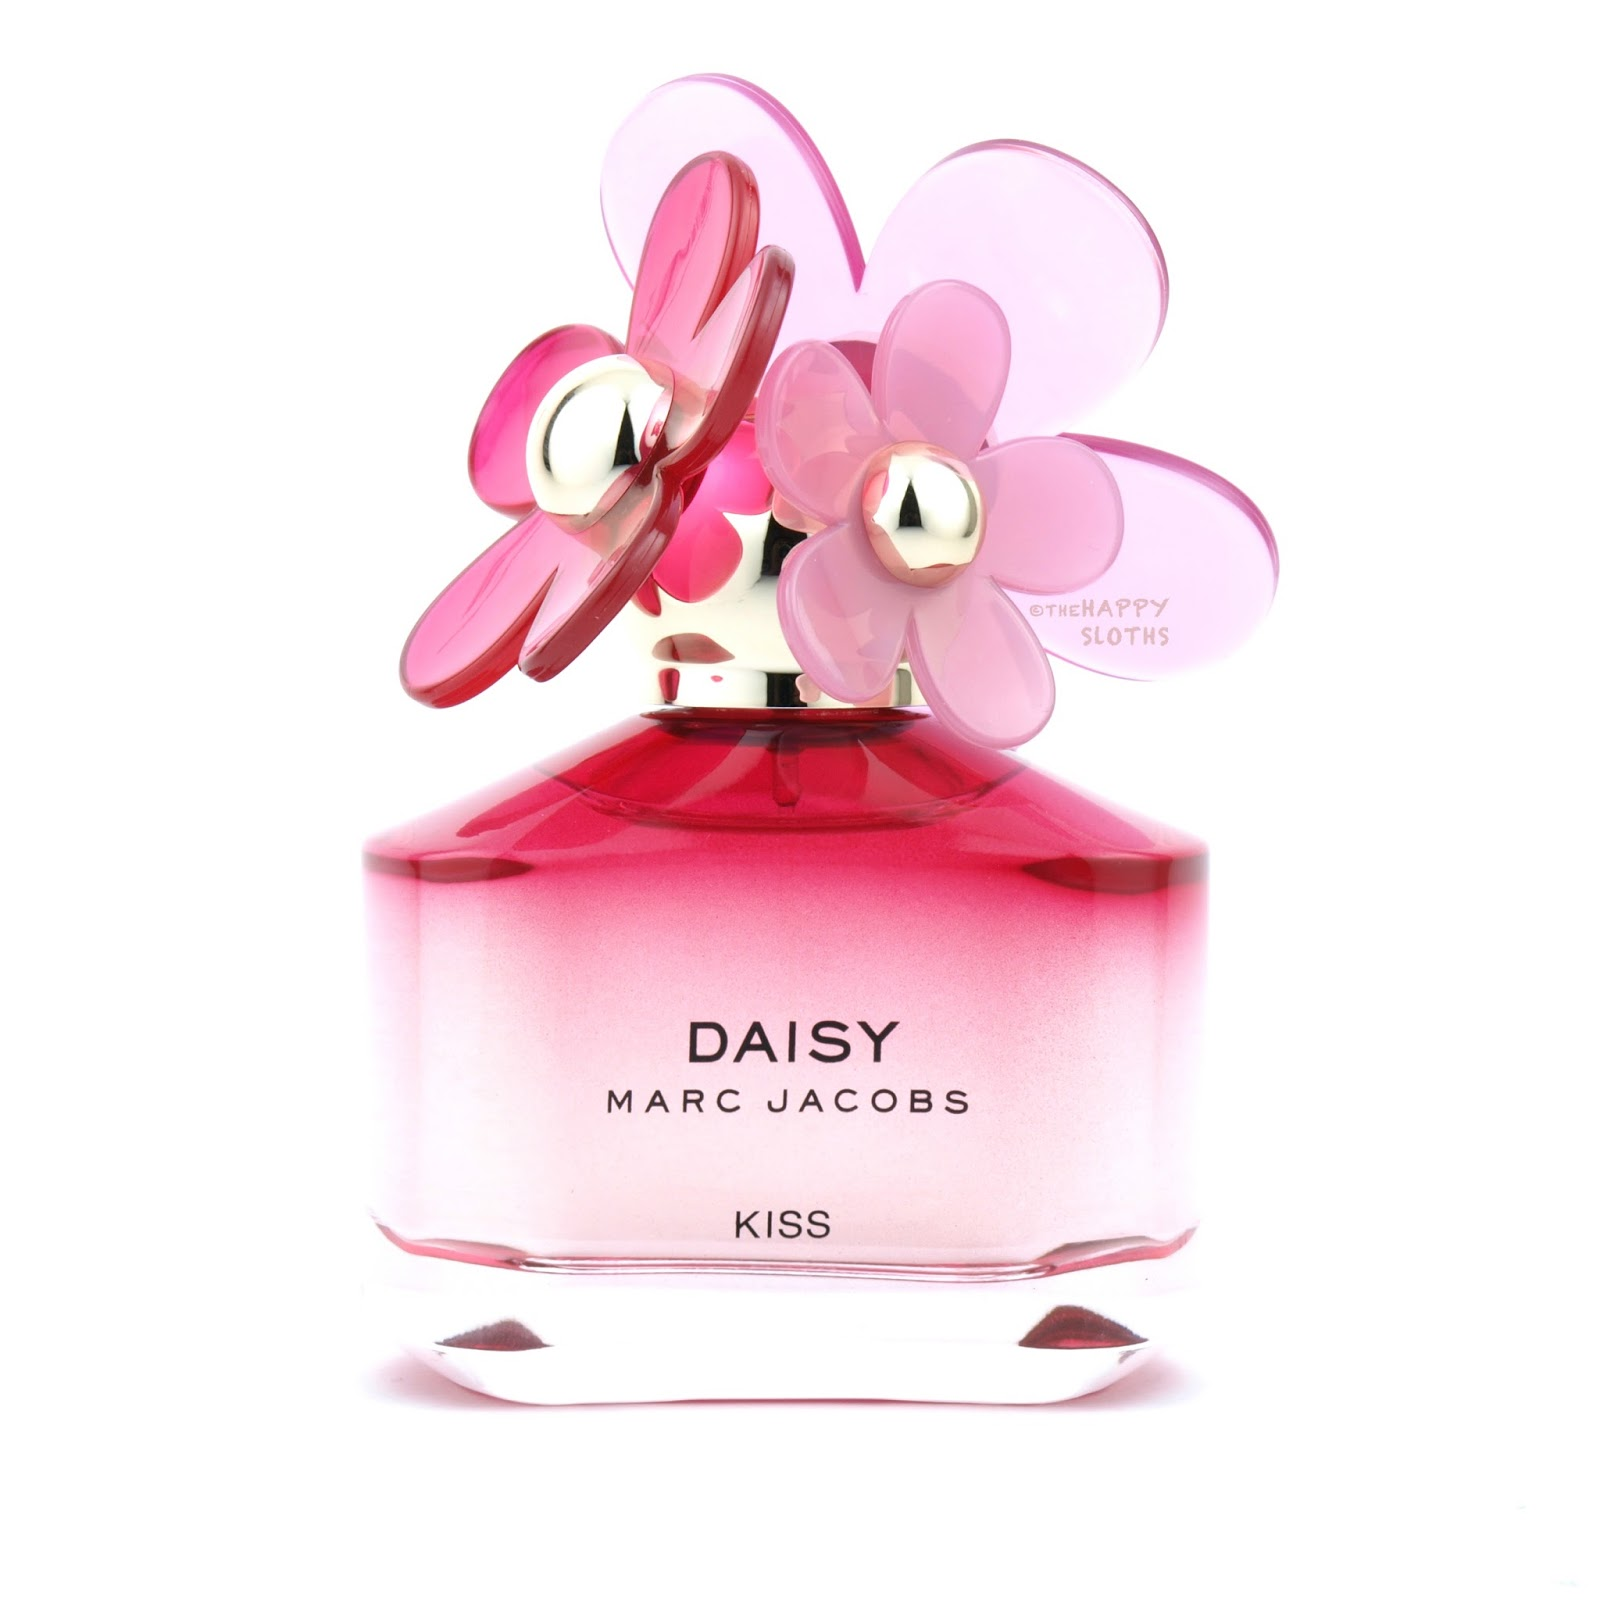 Marc Jacobs Daisy Kiss: Review